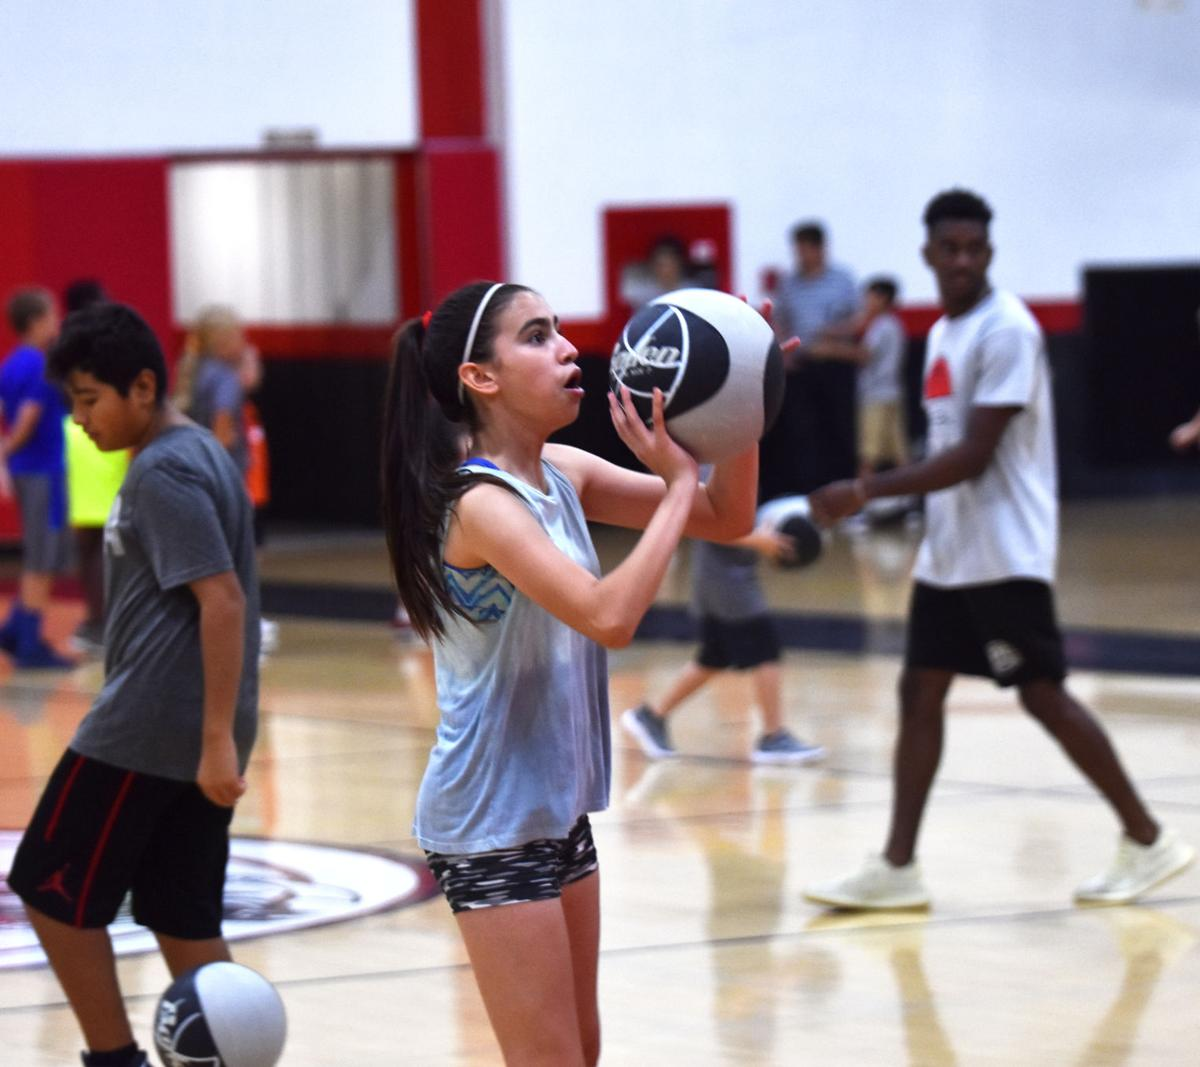 Hoop it up: Long-running IVC basketball camp marks another successful year